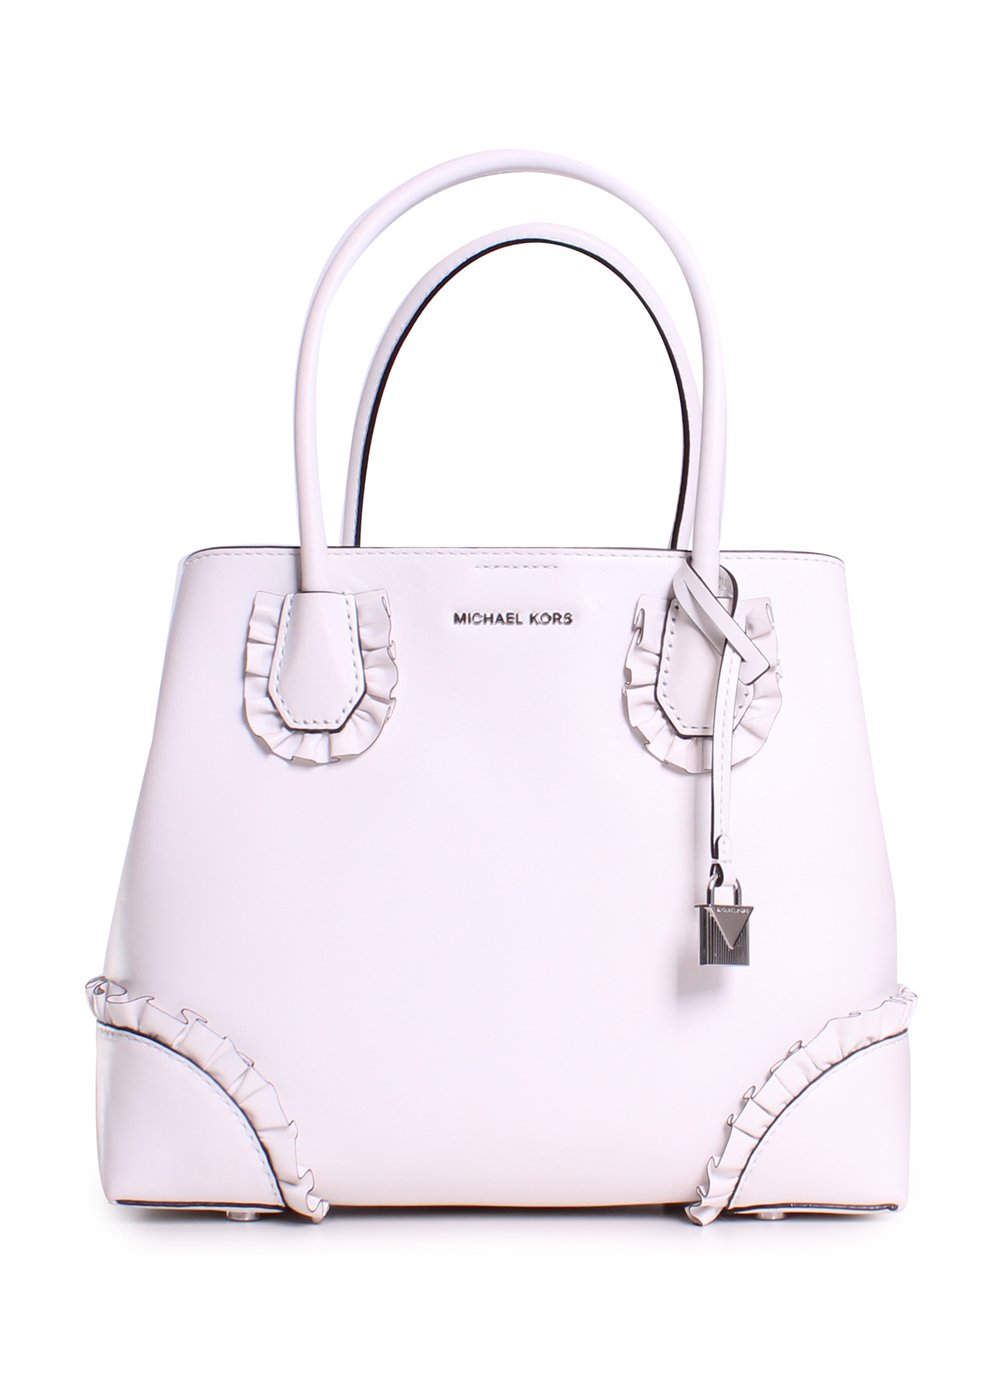 Michael Michael Kors Mercer Gallery Leather Ruffle Trim Medium Center Zip Tote Handbag in Optic White